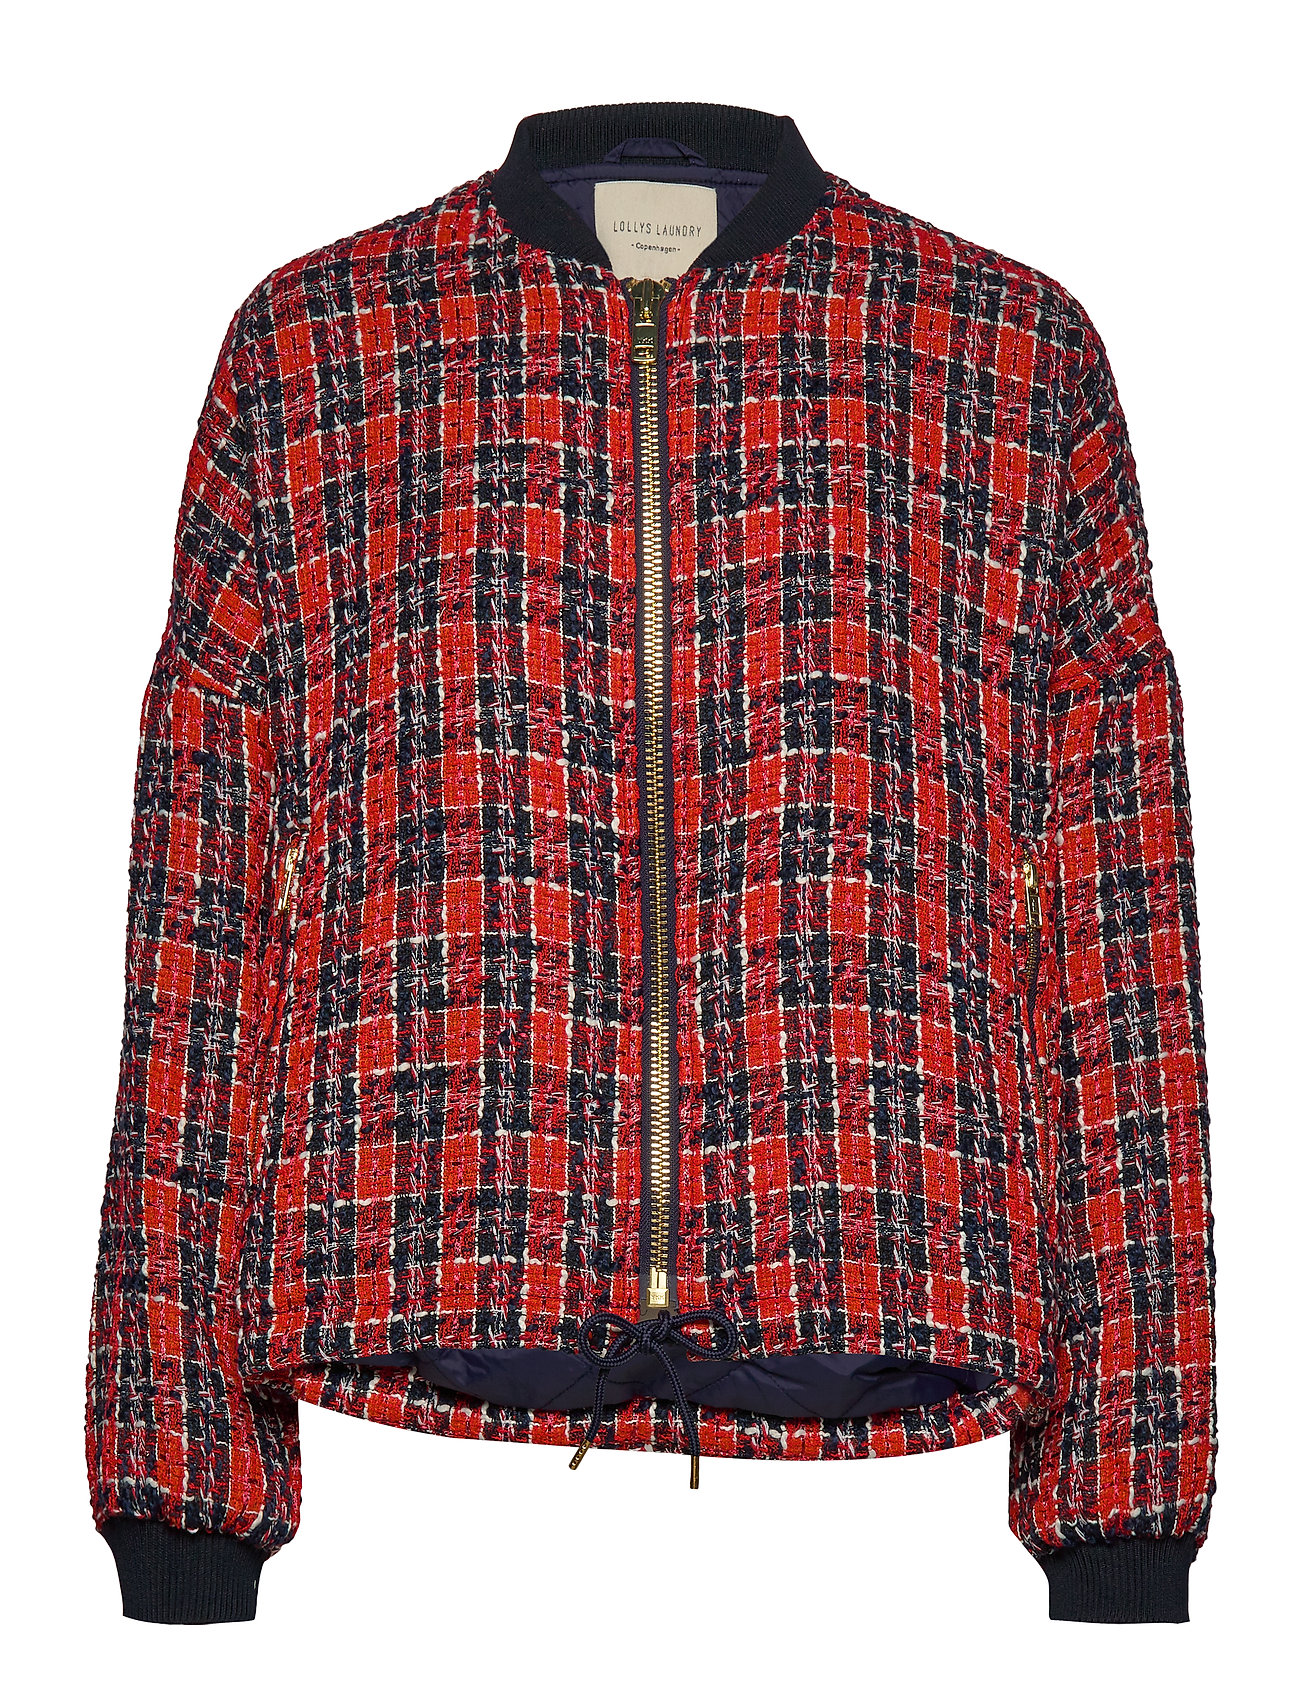 Lollys Laundry Wilma Jacket - RED